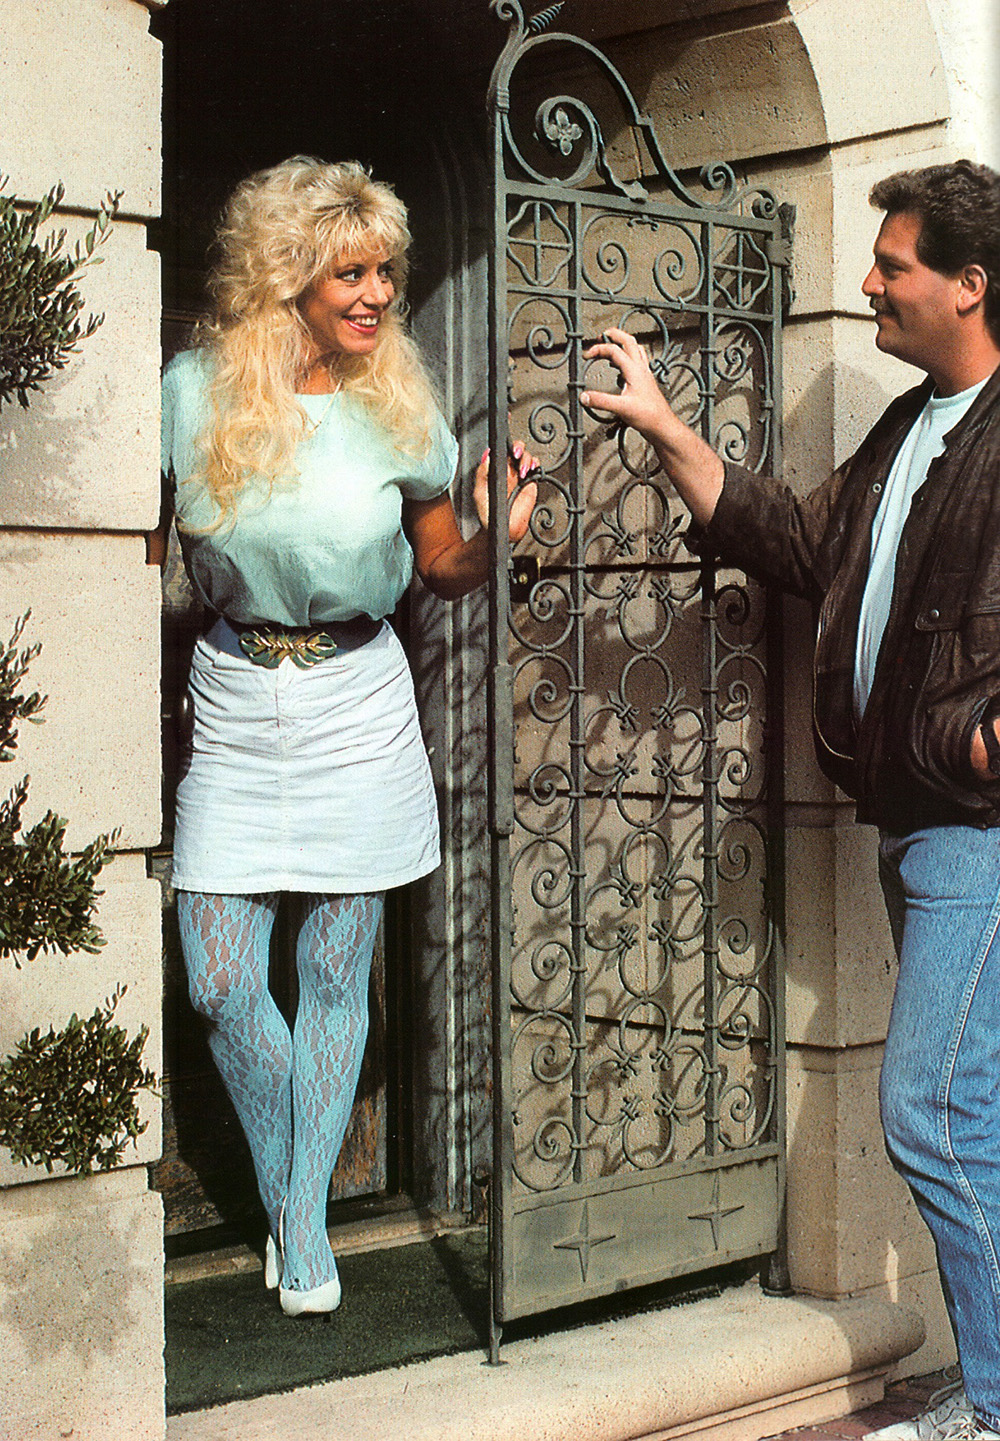 vintage images from adult magazines show the tasteless clothes that these people wore in the